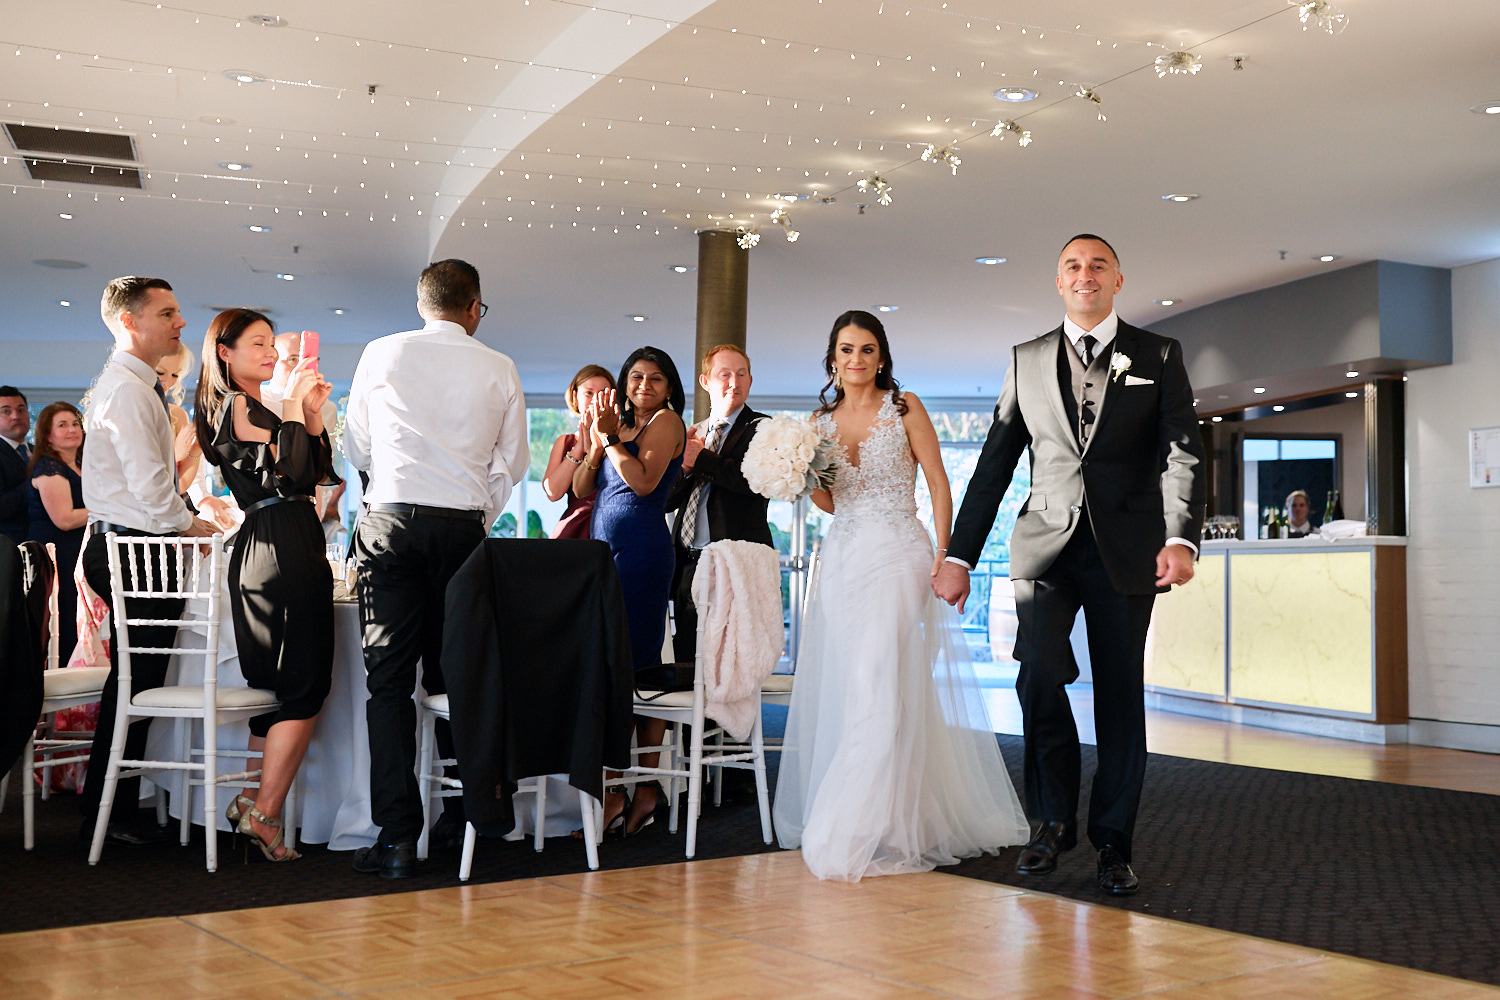 Guests standing and applauding newlyweds entering Taronga Centre reception by Blue Mountains wedding photographer Joshua Witheford